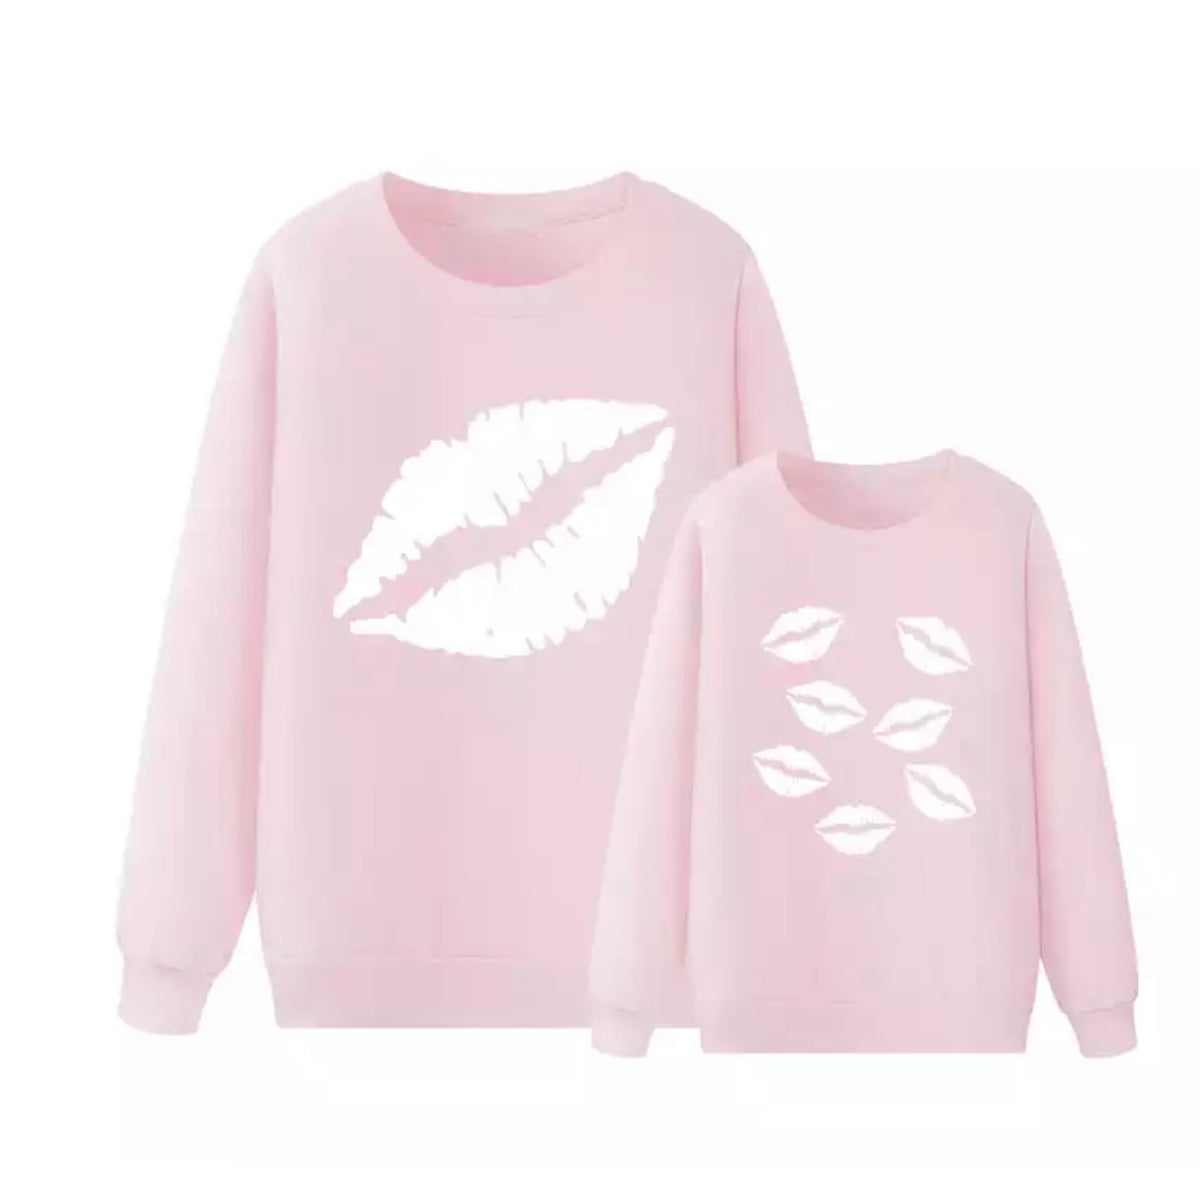 Lips Sweatshirt Mother Daughter Matching Adult